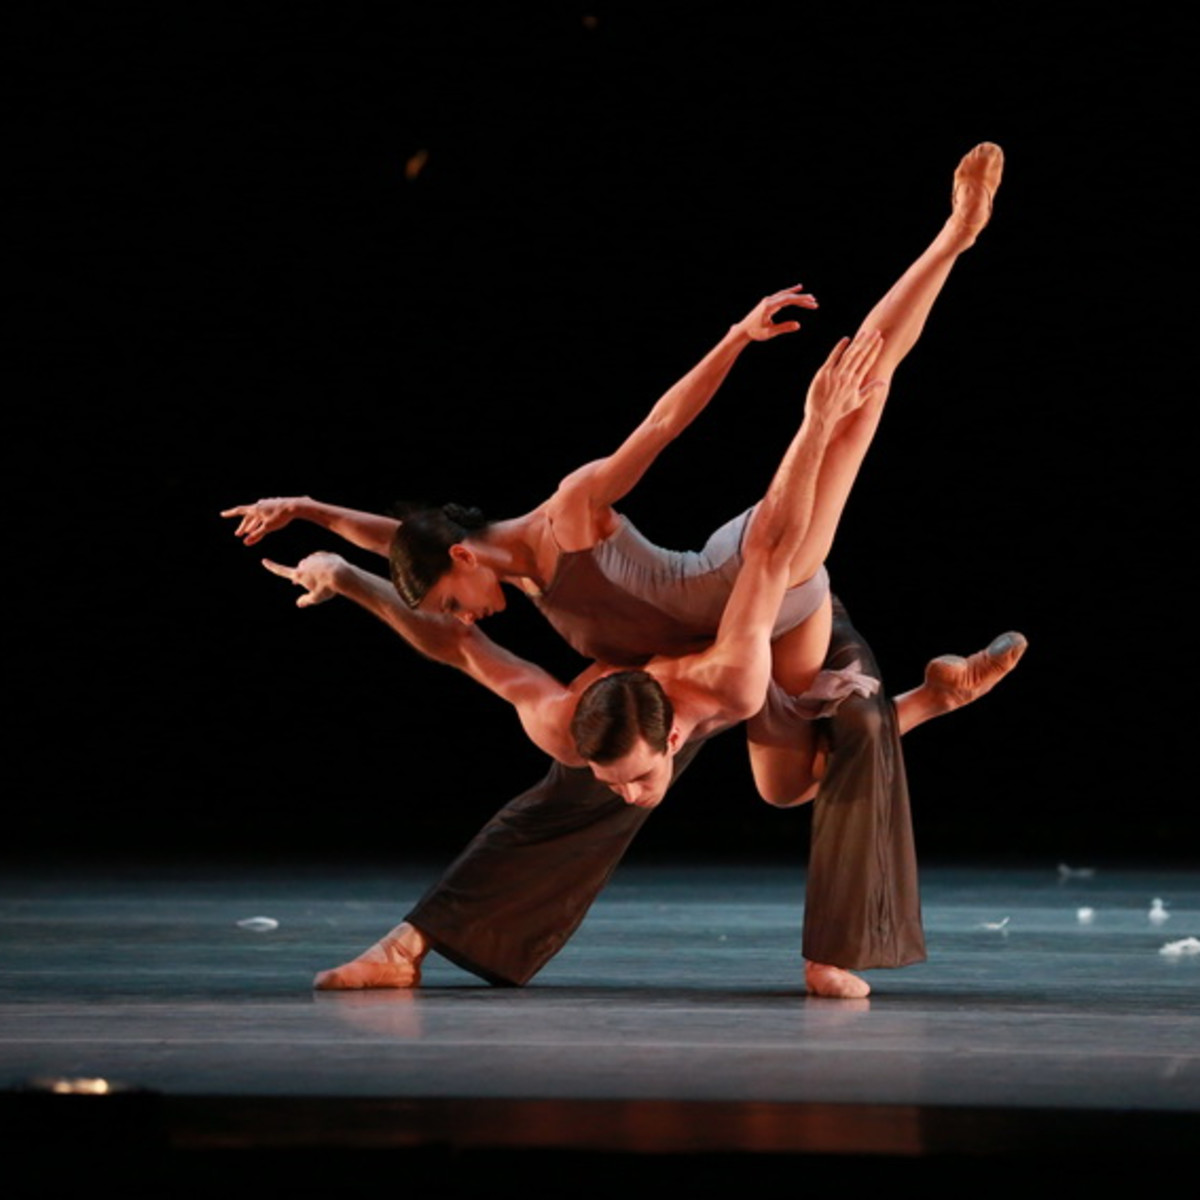 Karina Gonzales and Connor Walsh in Edwaard Liang's Murmuration